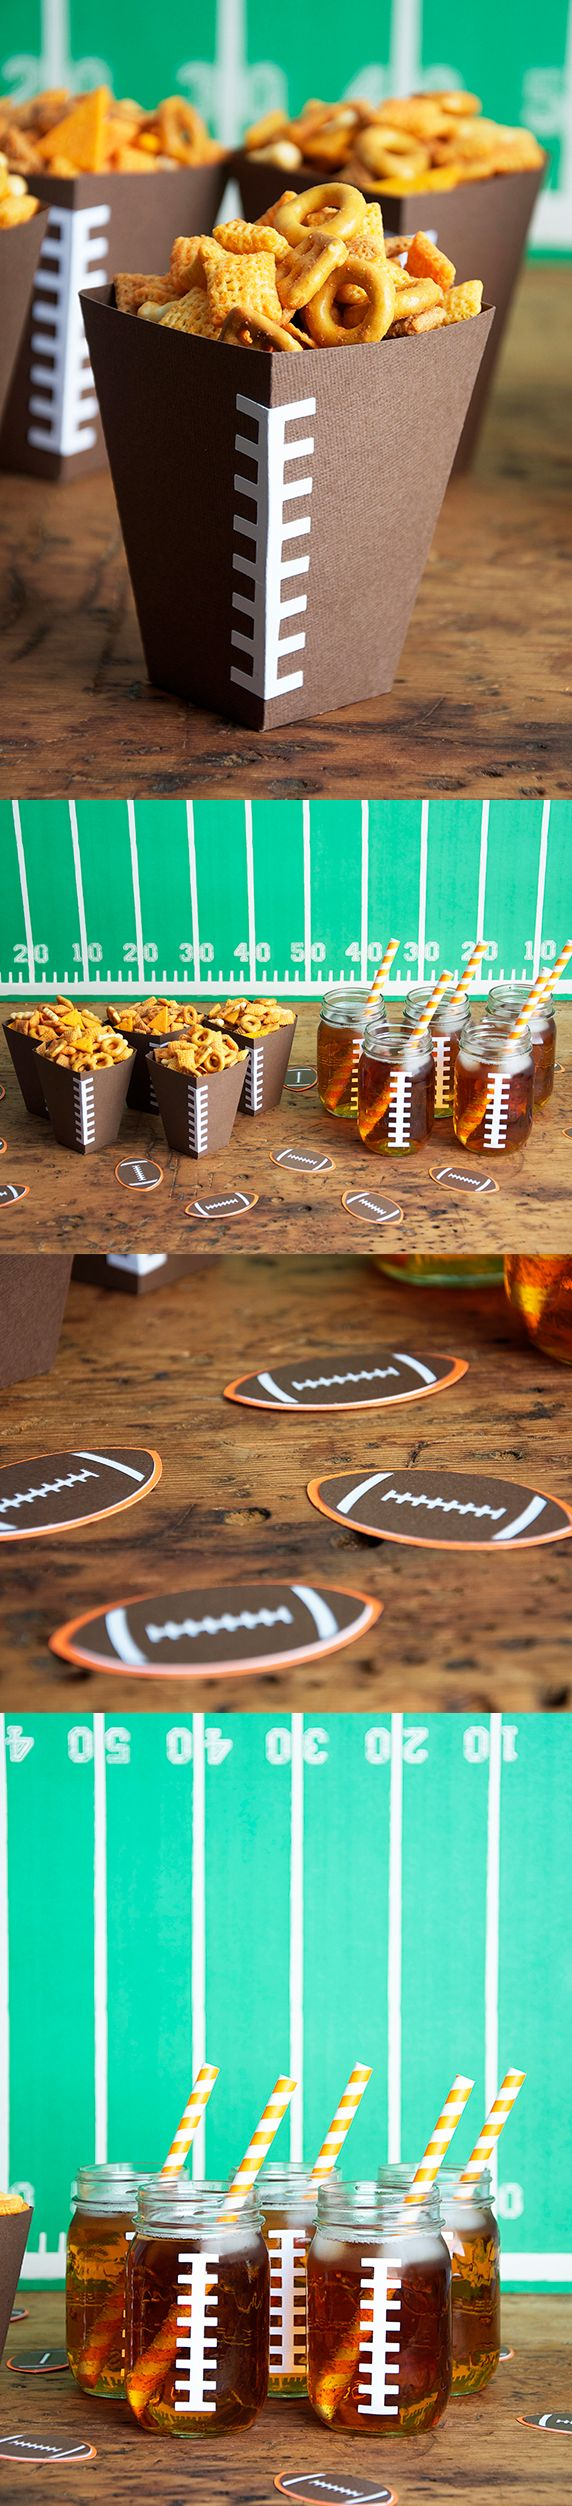 Super Bowl Party Decorations Uk Don't Forget These Awesome Cricut Ideas For Superbowl Sunday